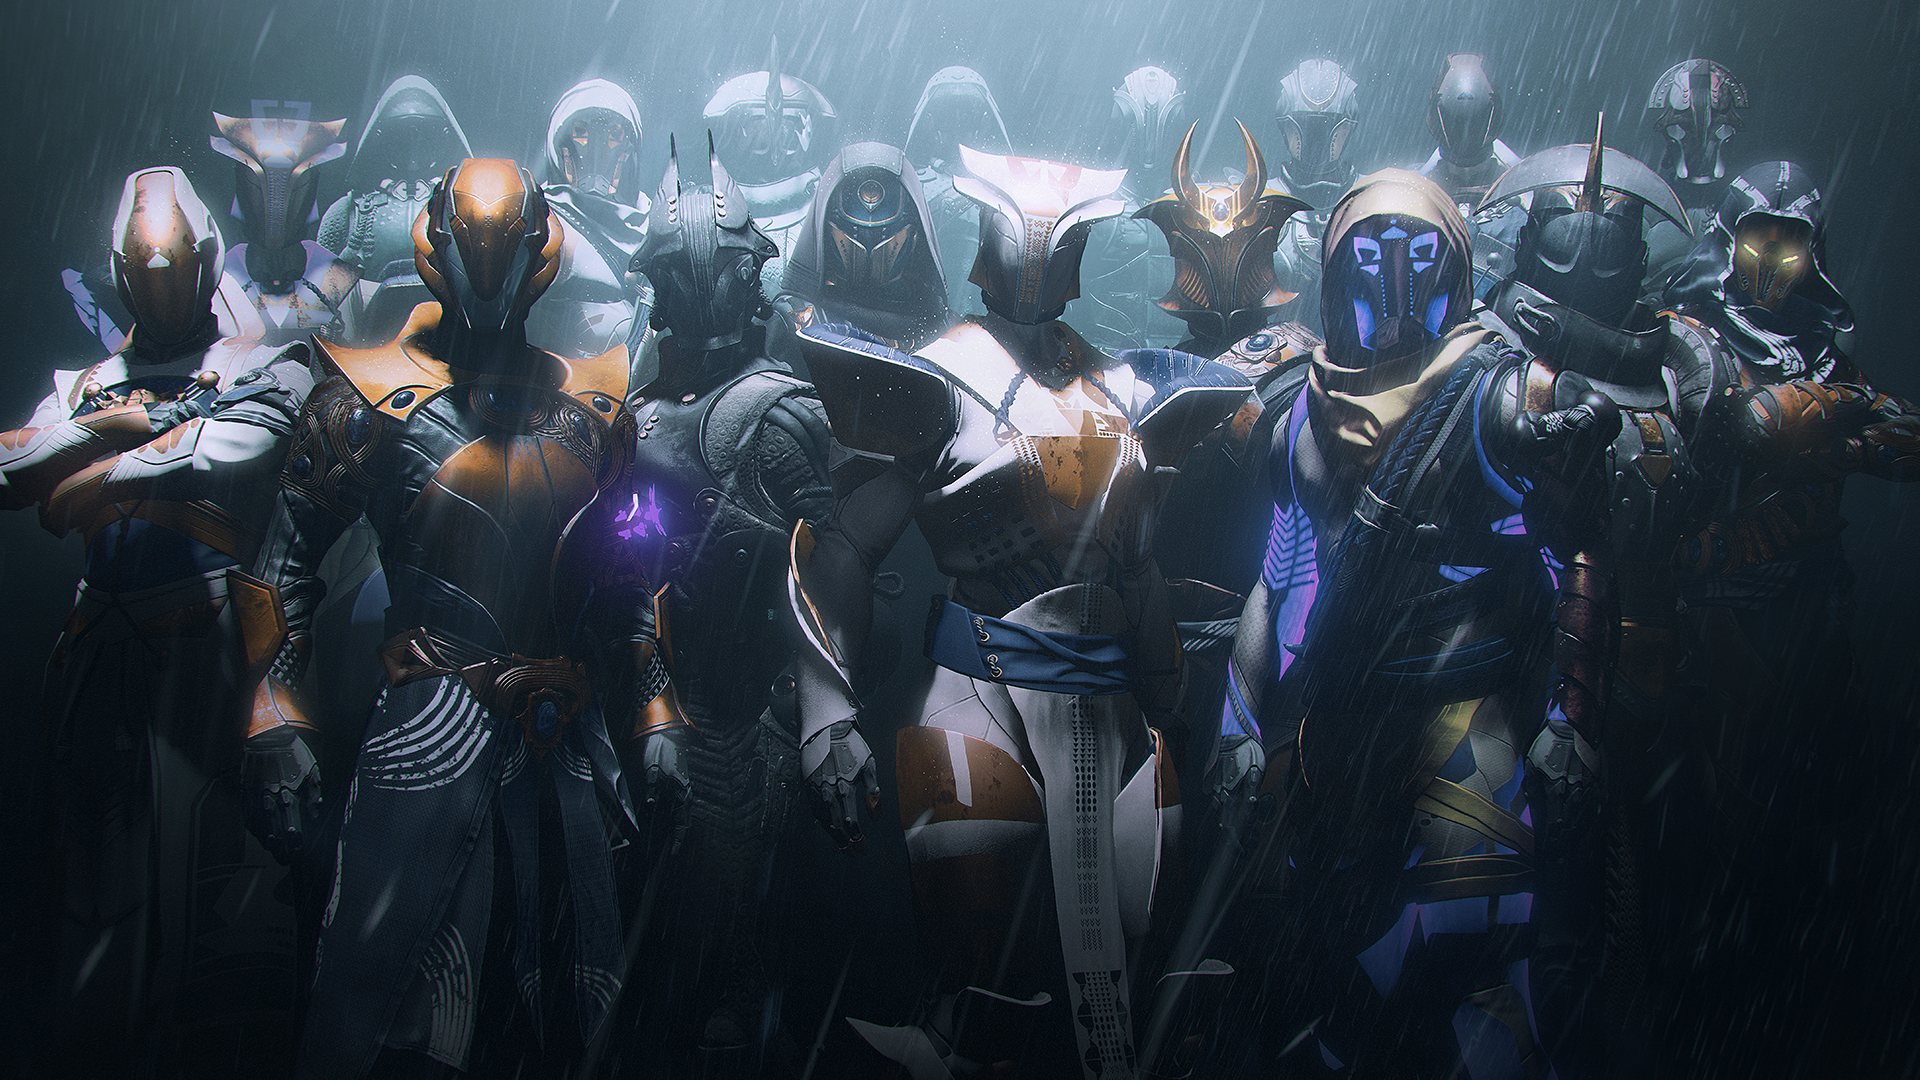 Wallpaper 01 16 9 - Bungie Day 2020